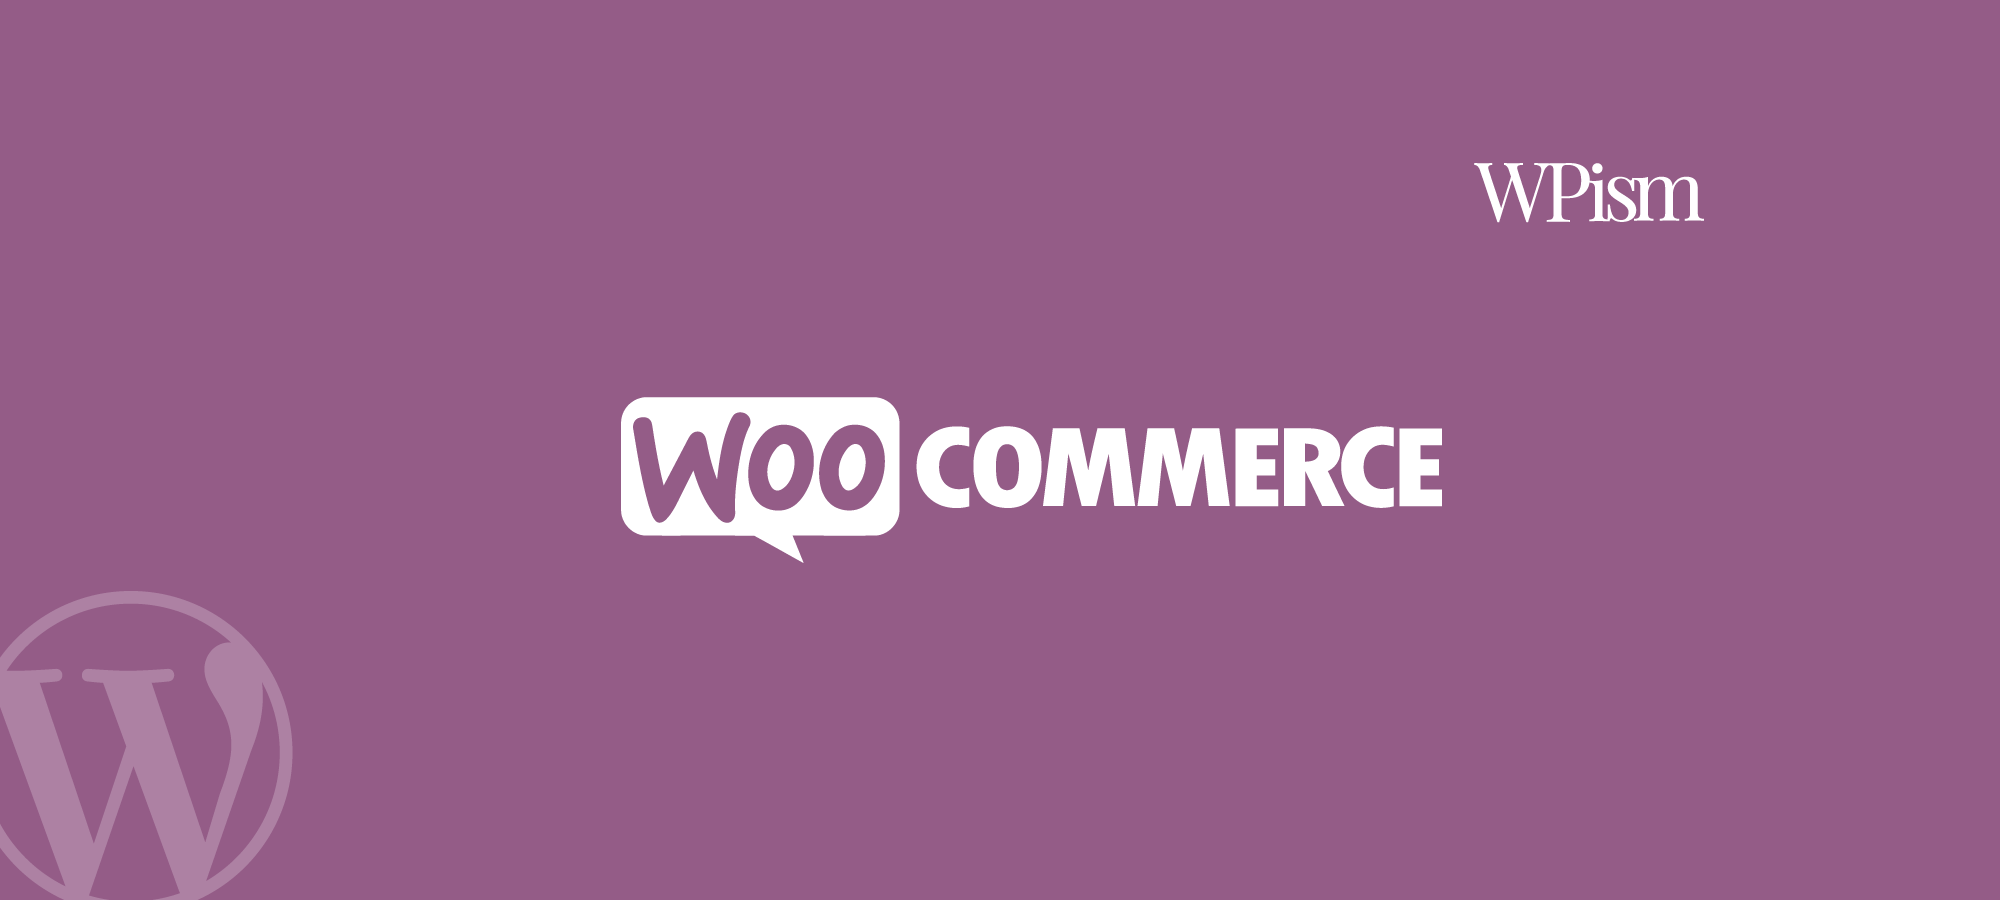 WooCommerce Coupon Code deals and promotions